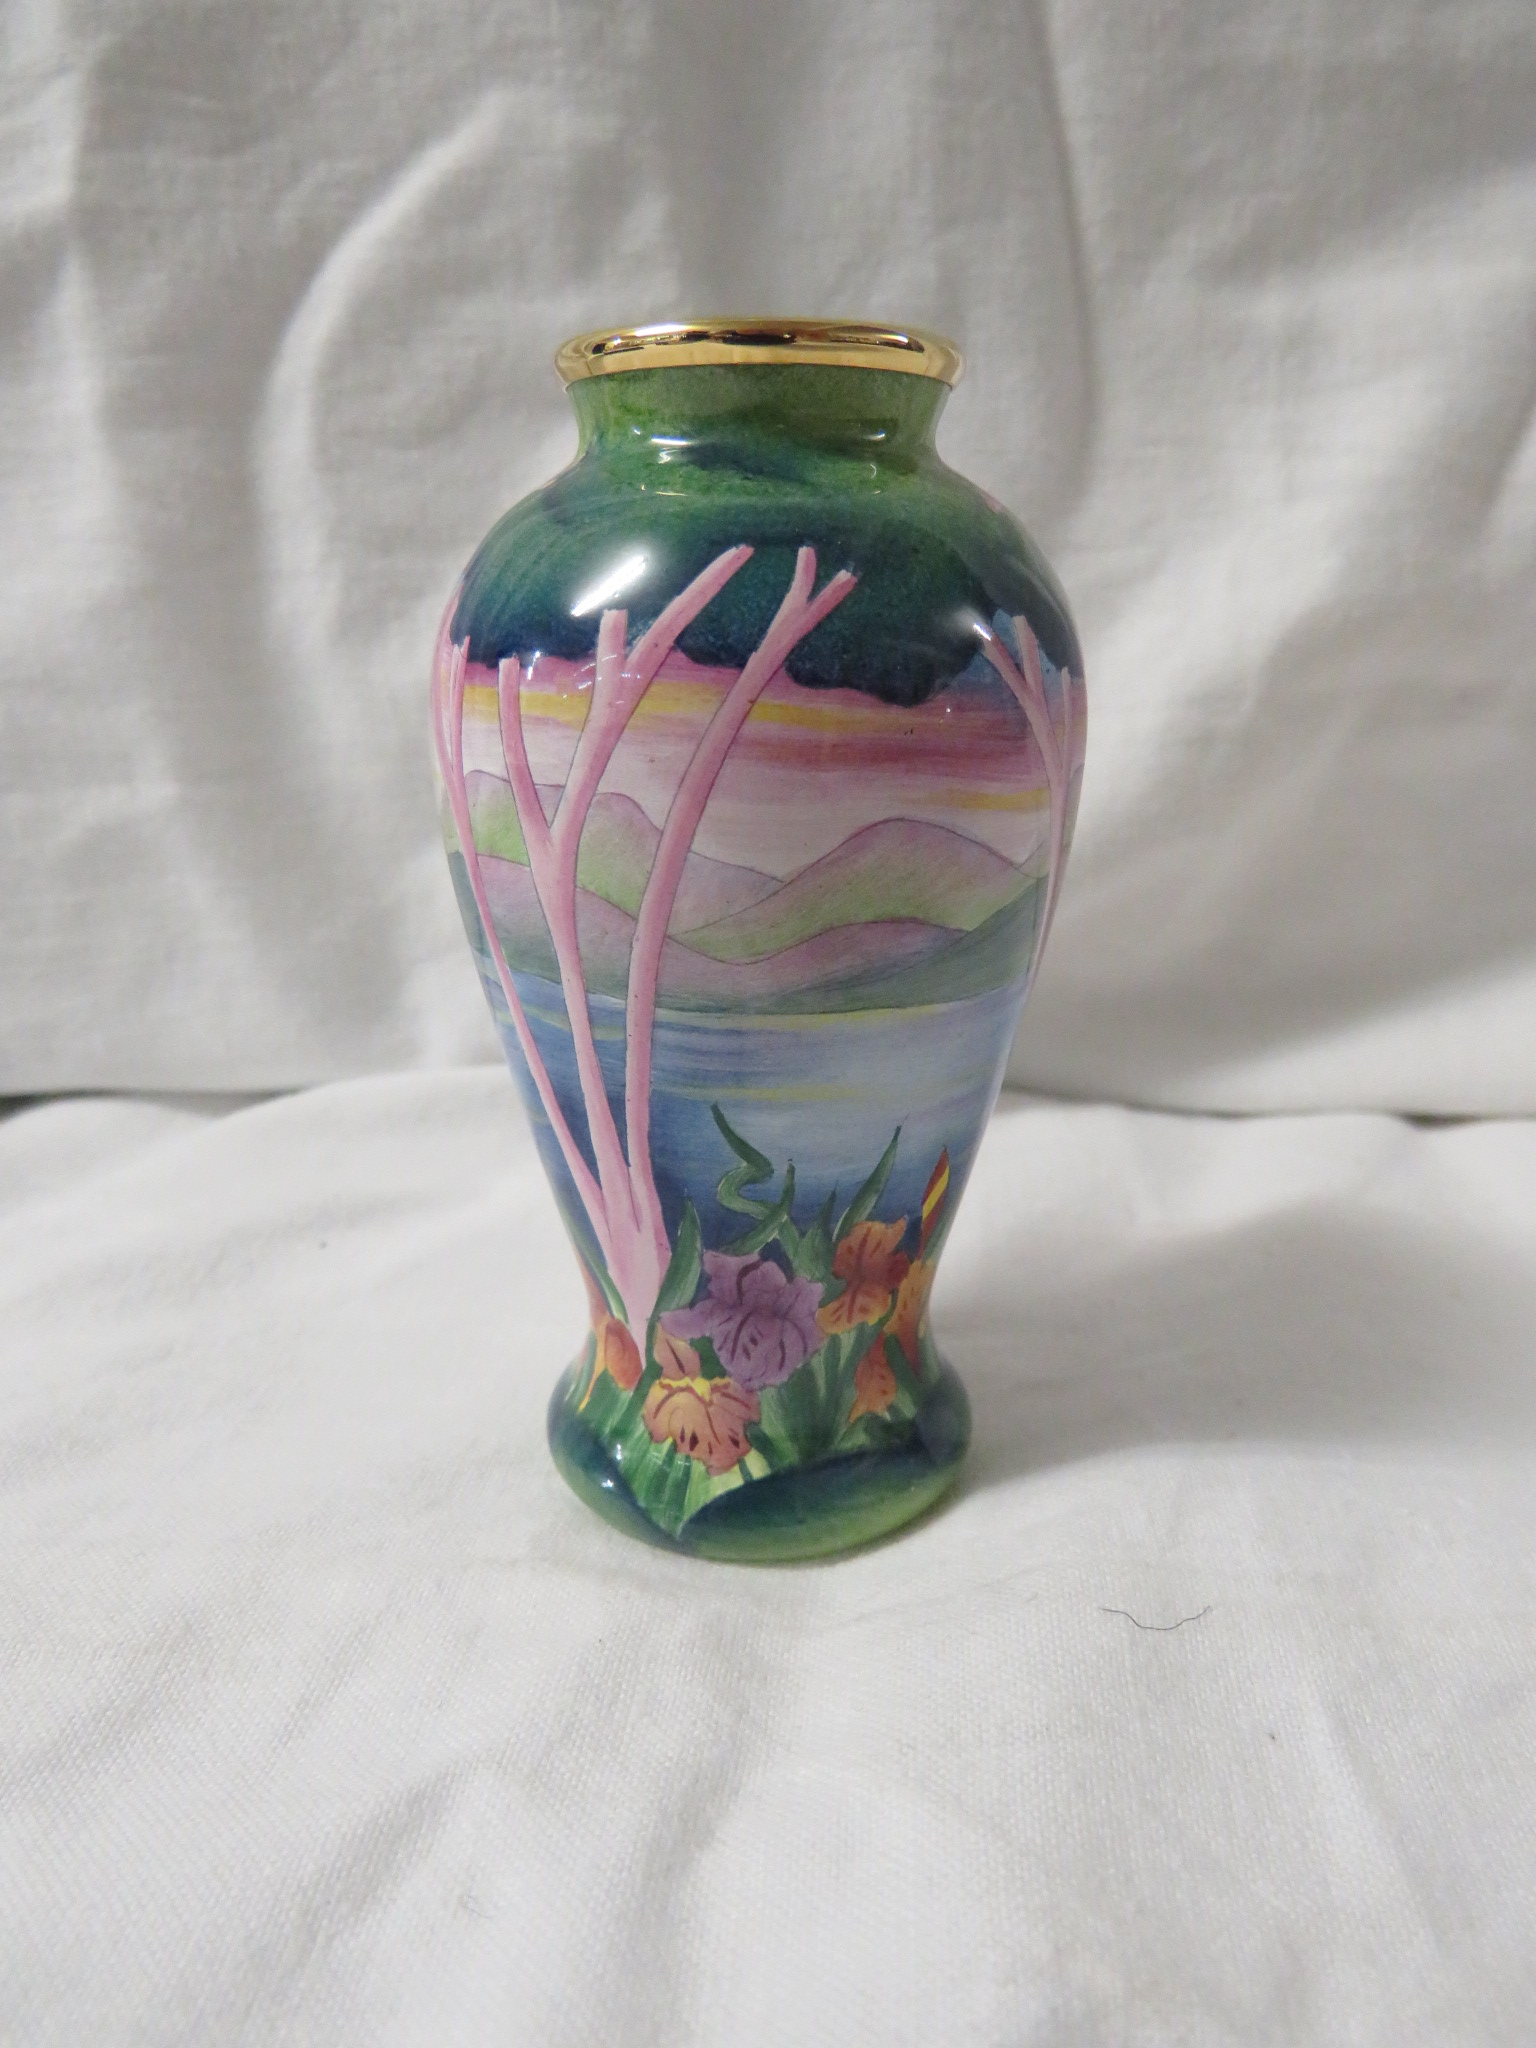 Lot 31 - Moorcroft enamel baluster vase, continuous landscape with trees, hills and irises, gilt rim,